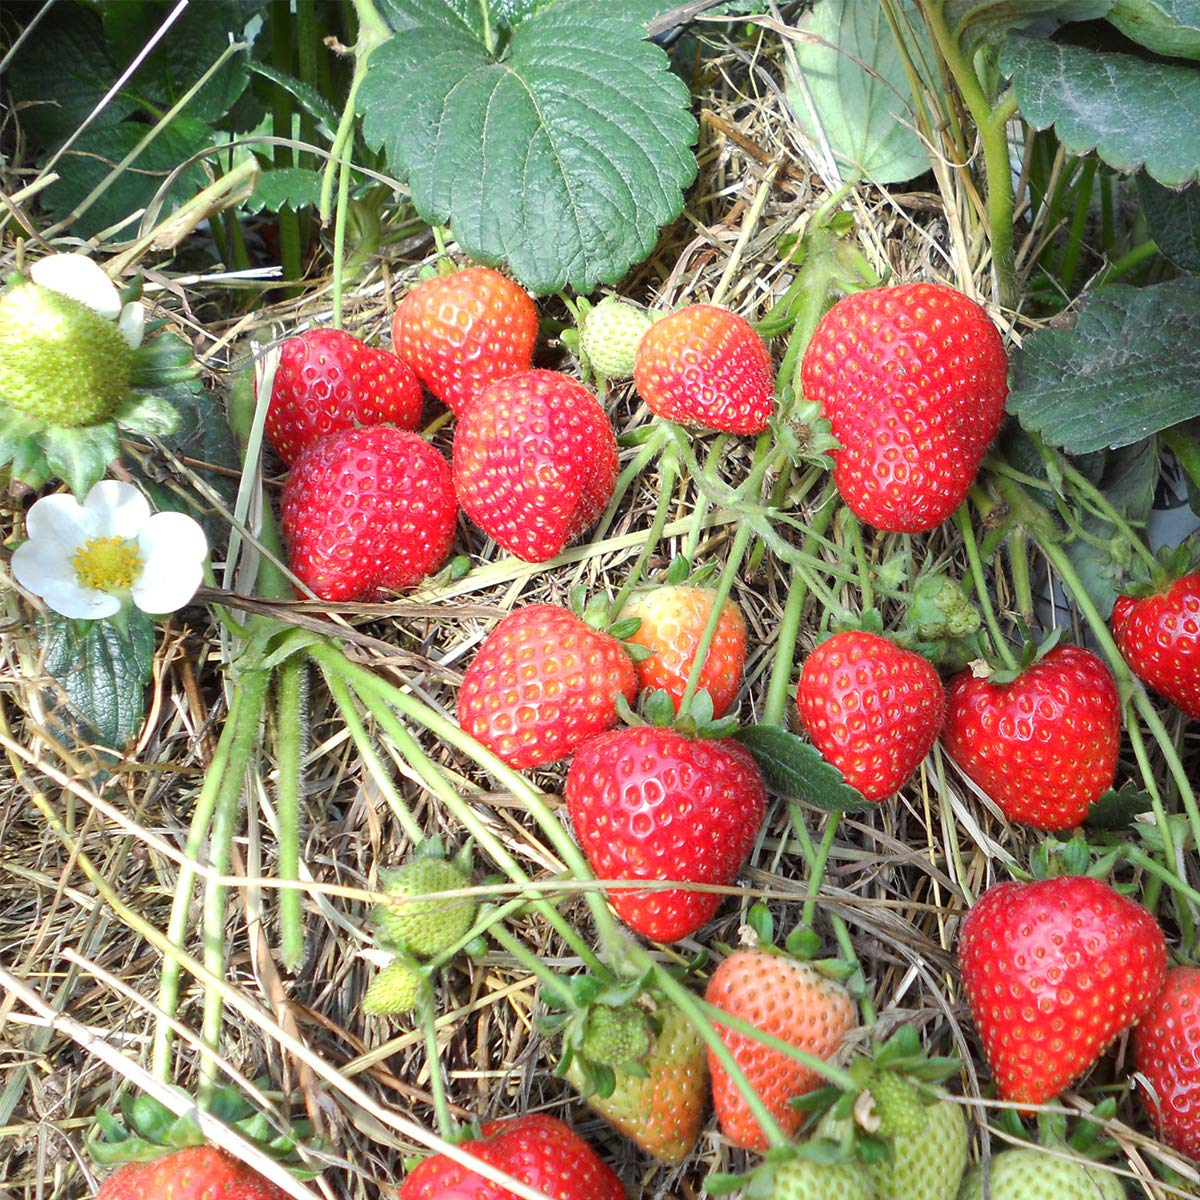 Burpee 'Sweet Kiss' Ever-Bearing Strawberry shipped as 25 BARE ROOT PLANTS by Burpee (Image #3)